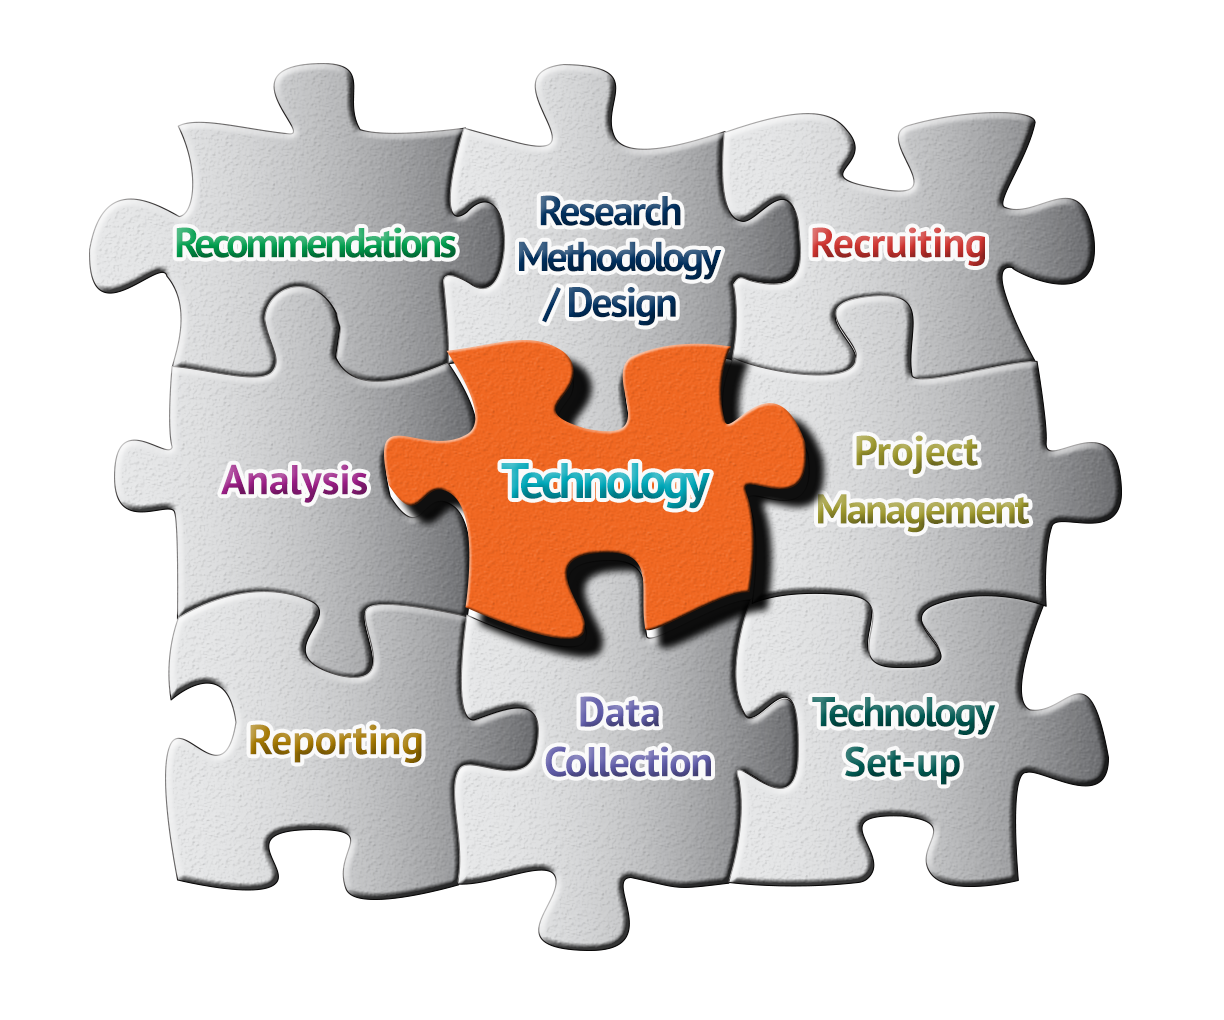 itracks helps put the right pieces in place for your research.